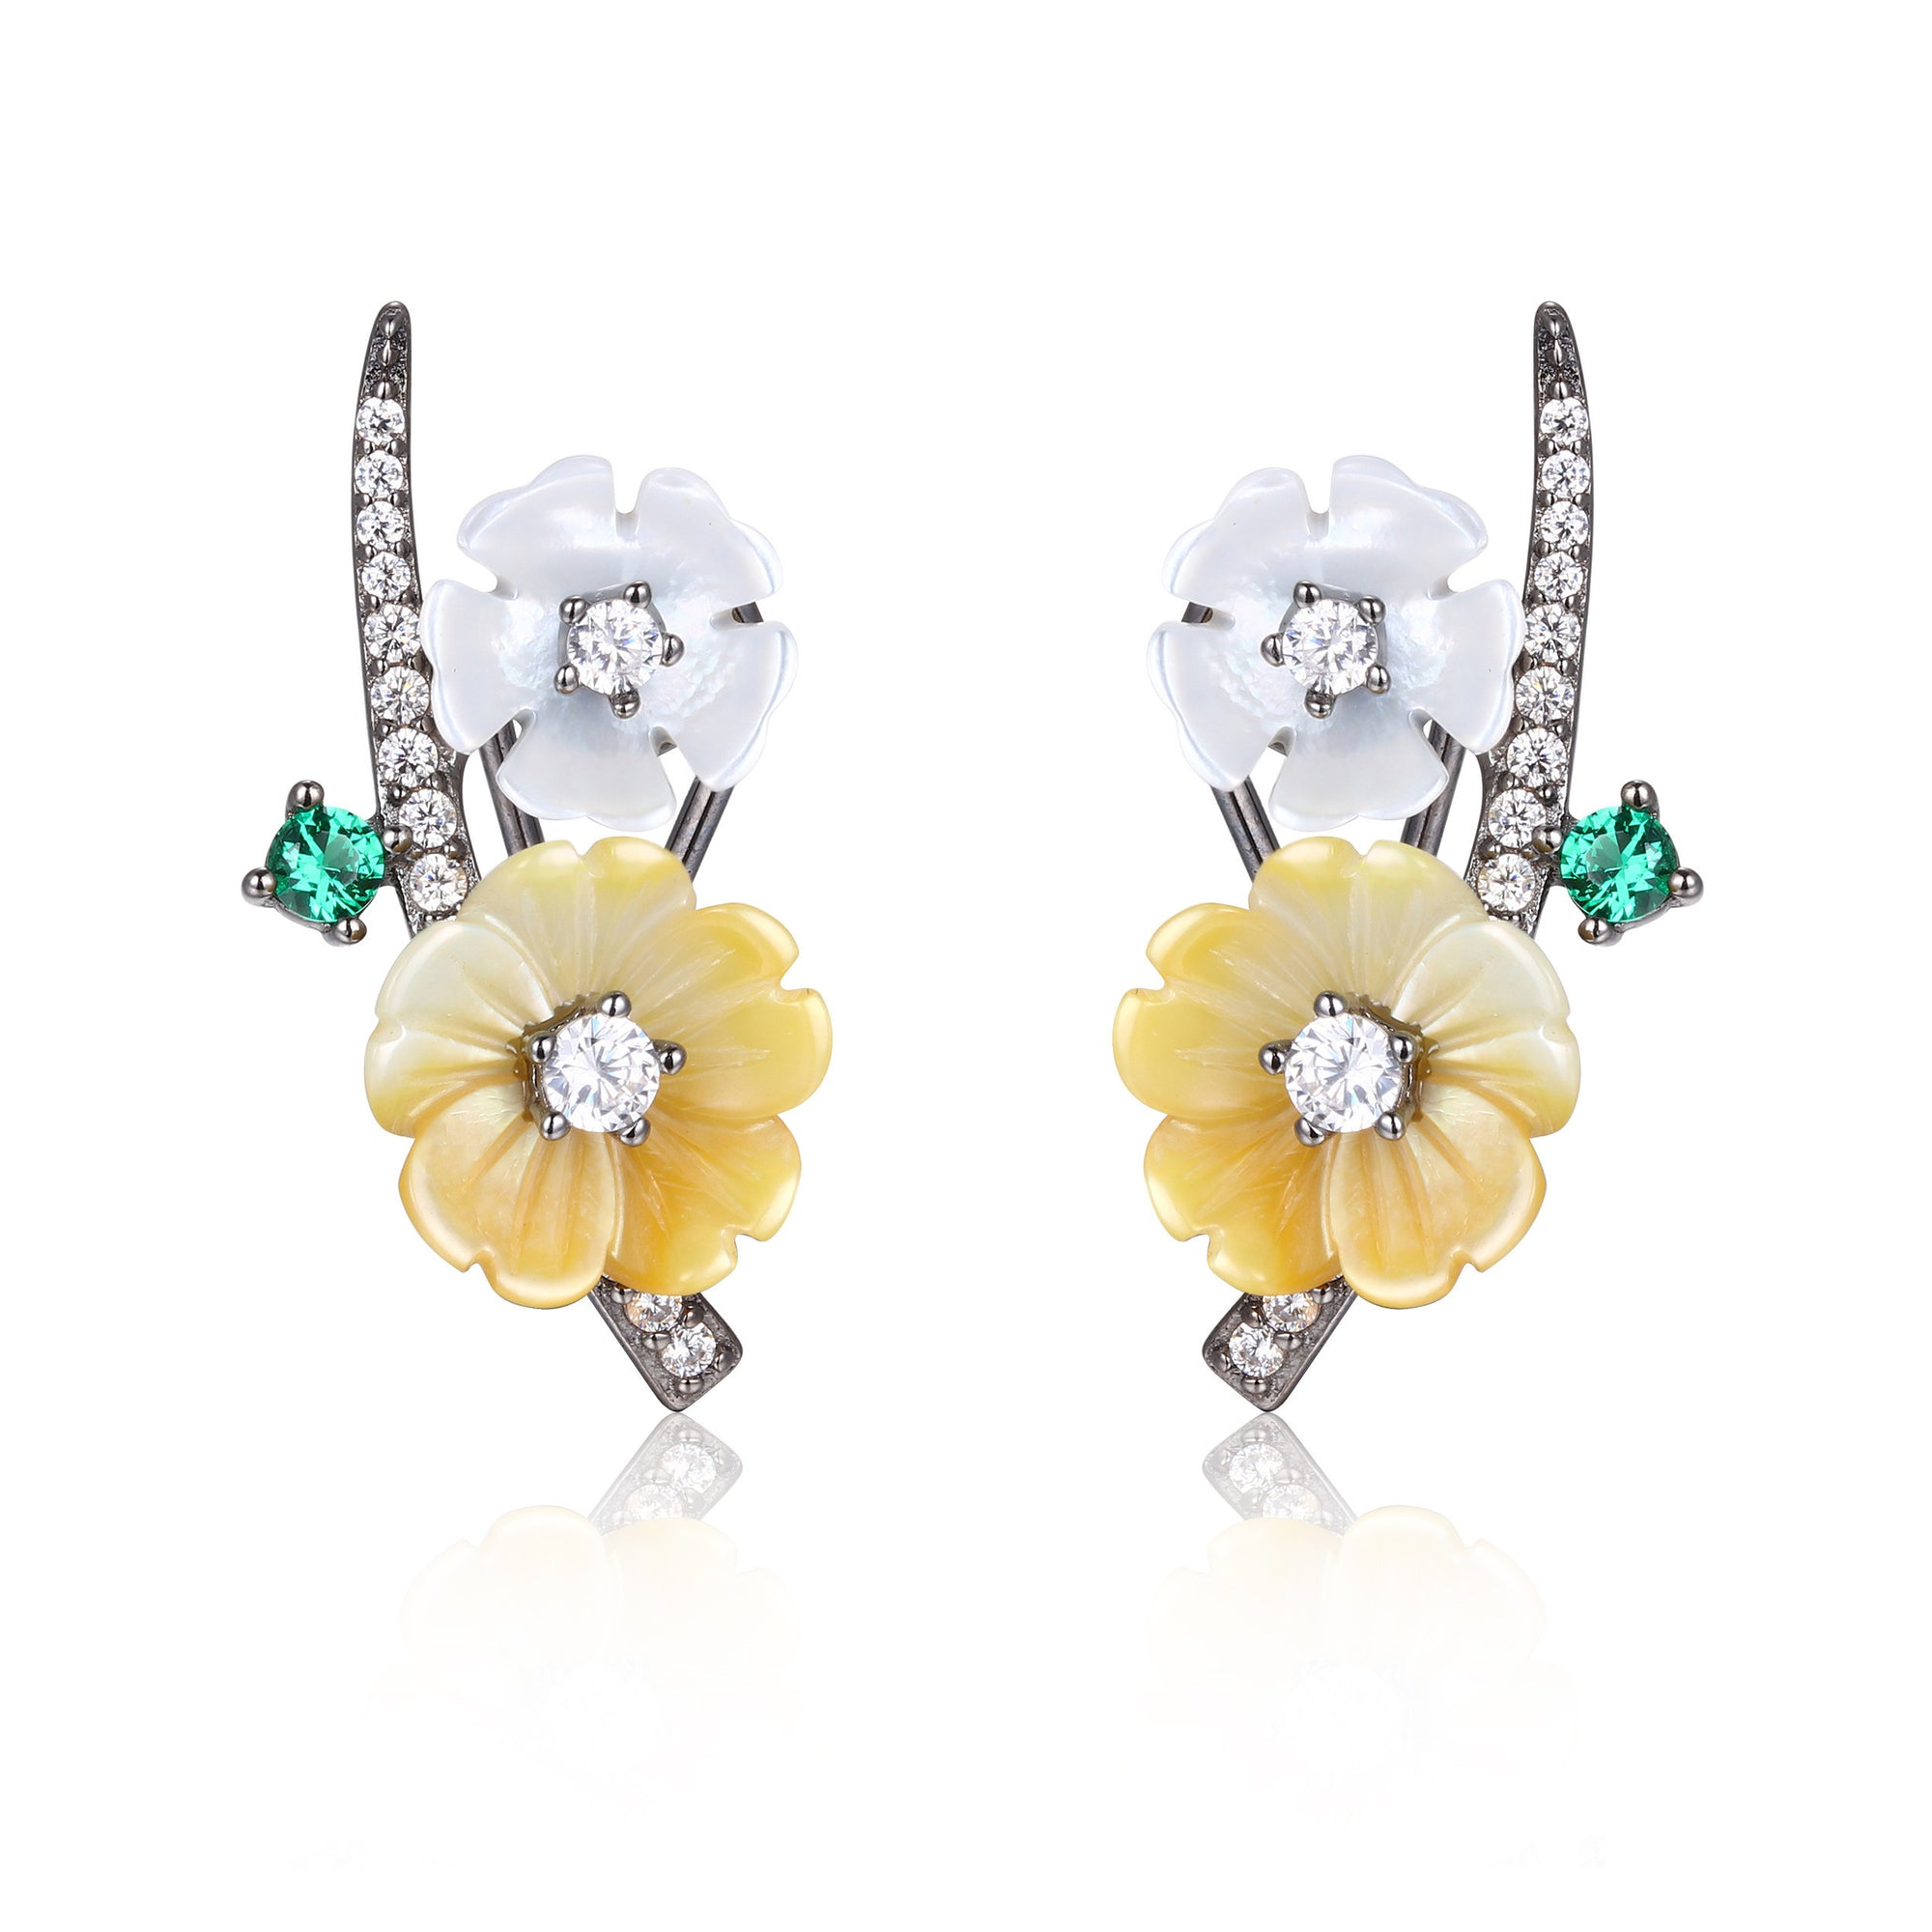 Finesse Earrings - penelope-it.com